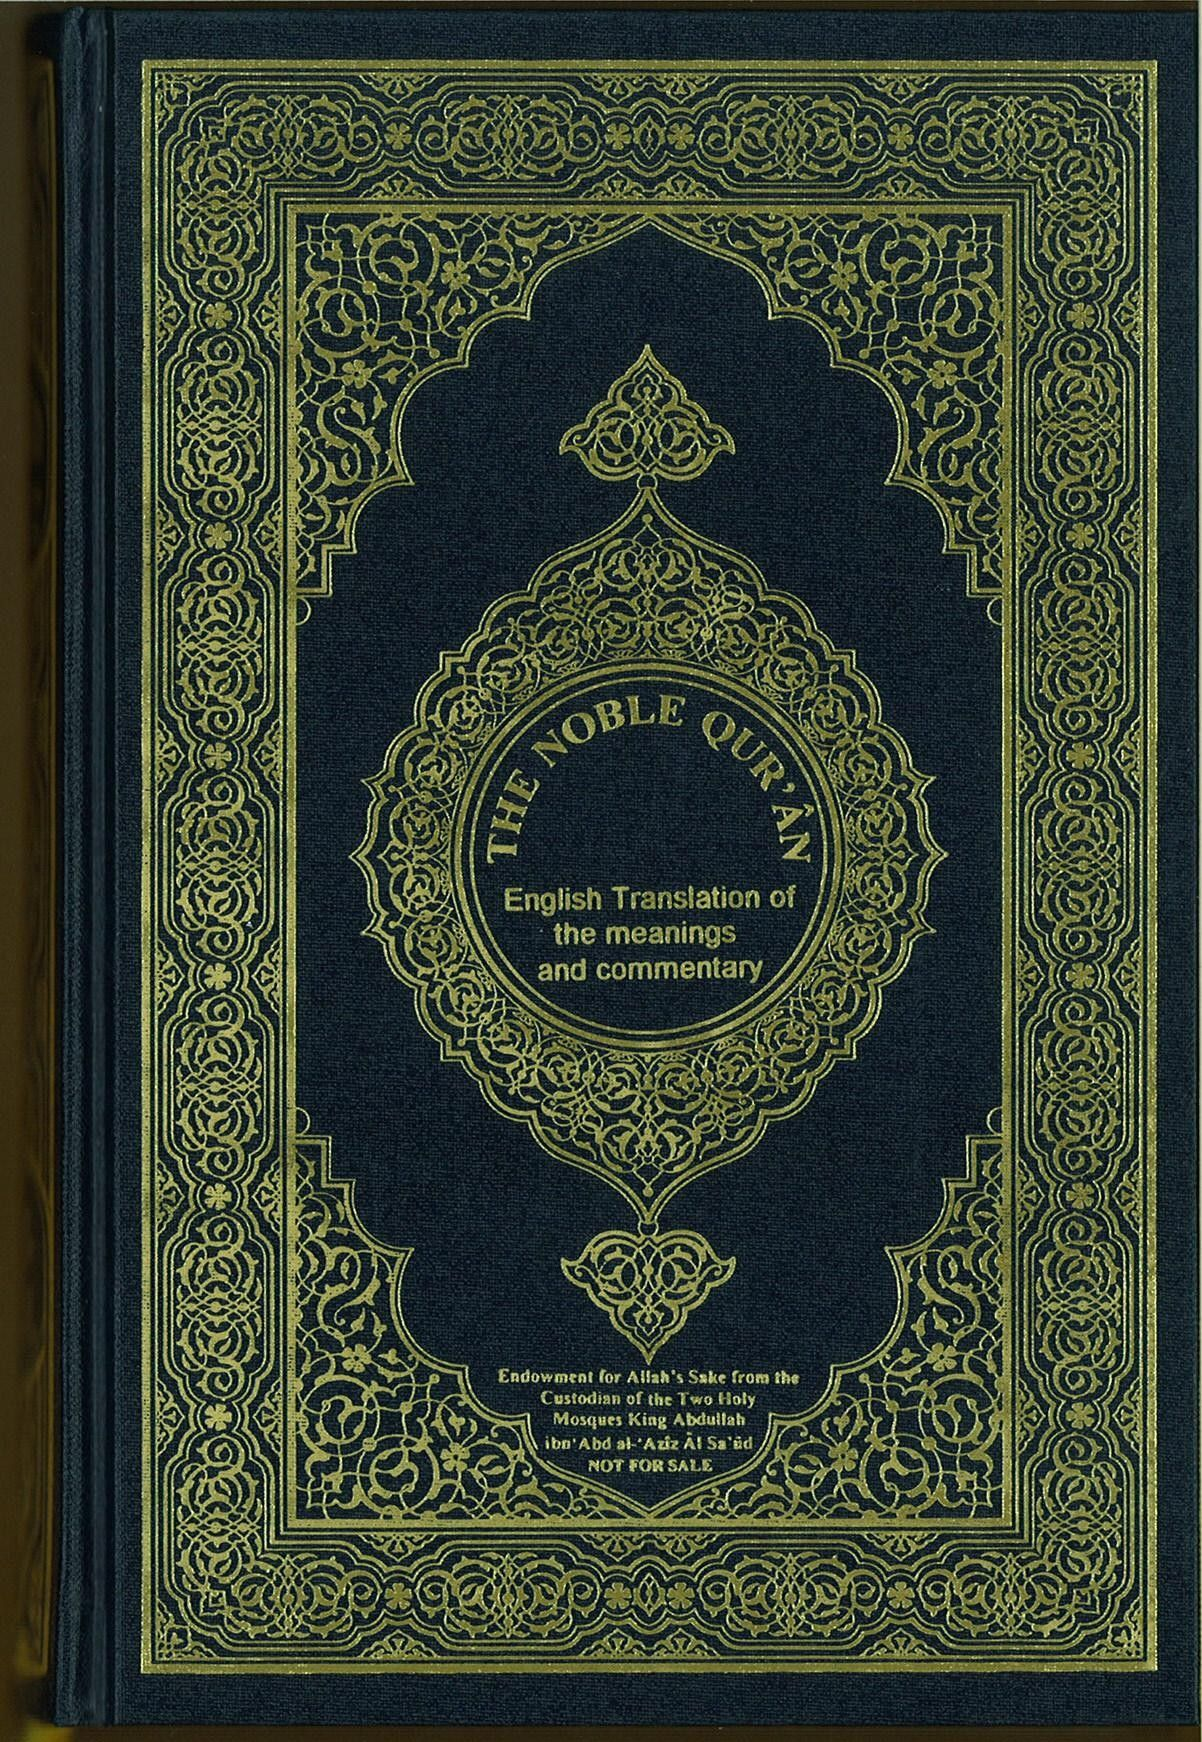 Quran Book Cover Template : Pin by burhan on cover books islam